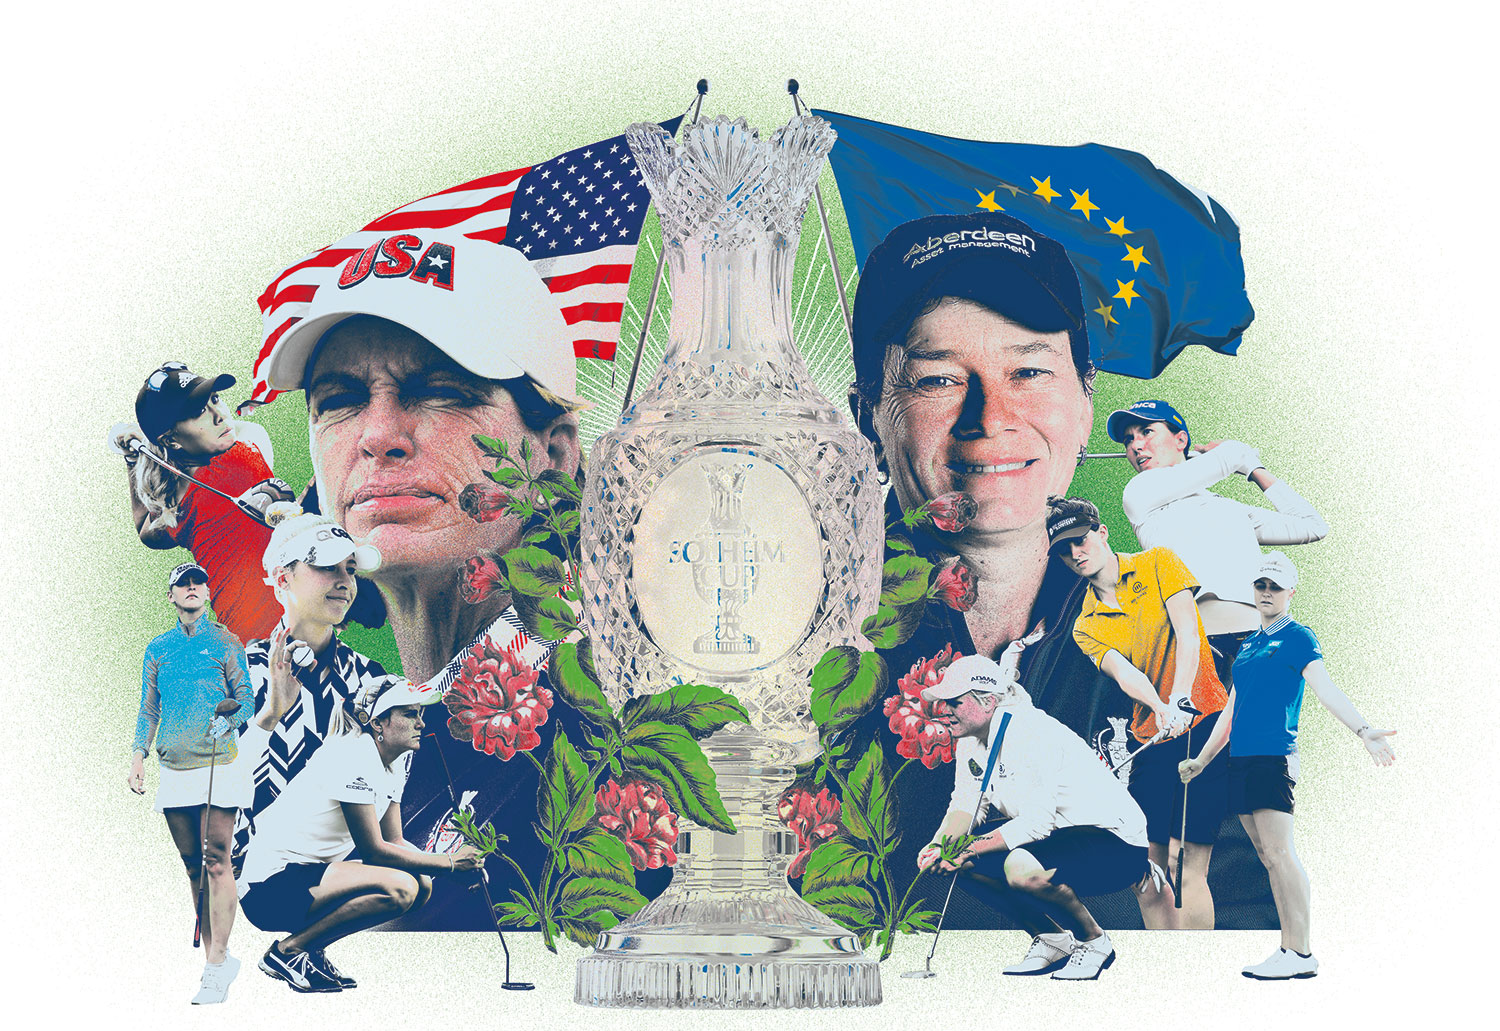 Max-o-matic: Golf Digest: Solheim Cup